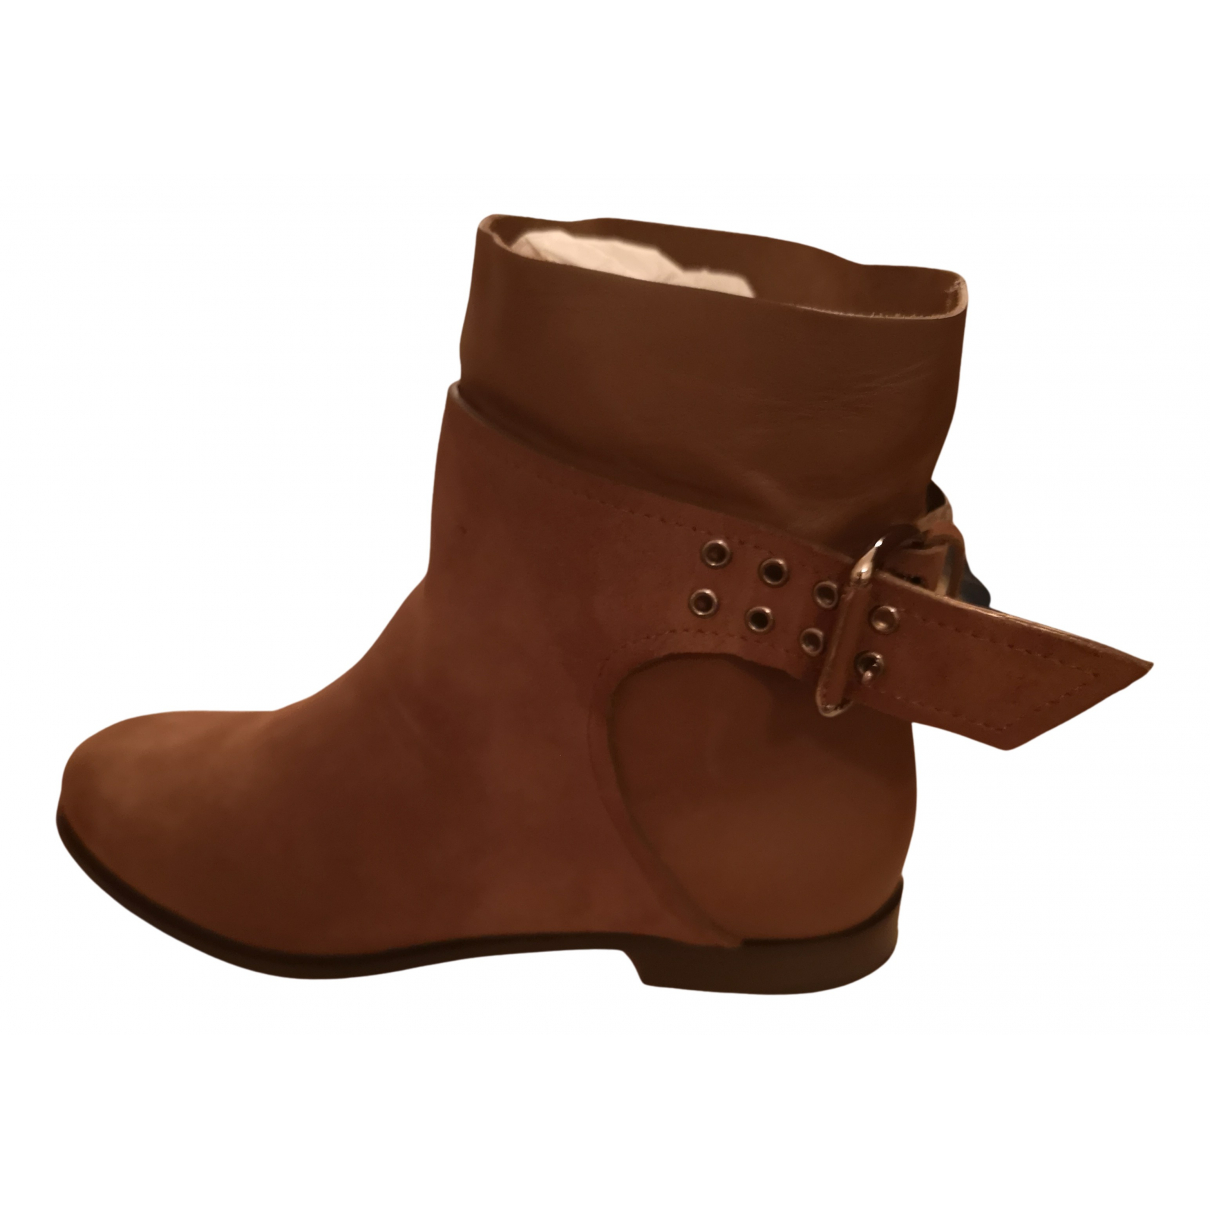 Jimmy Choo N Brown Suede Ankle boots for Women 36 IT